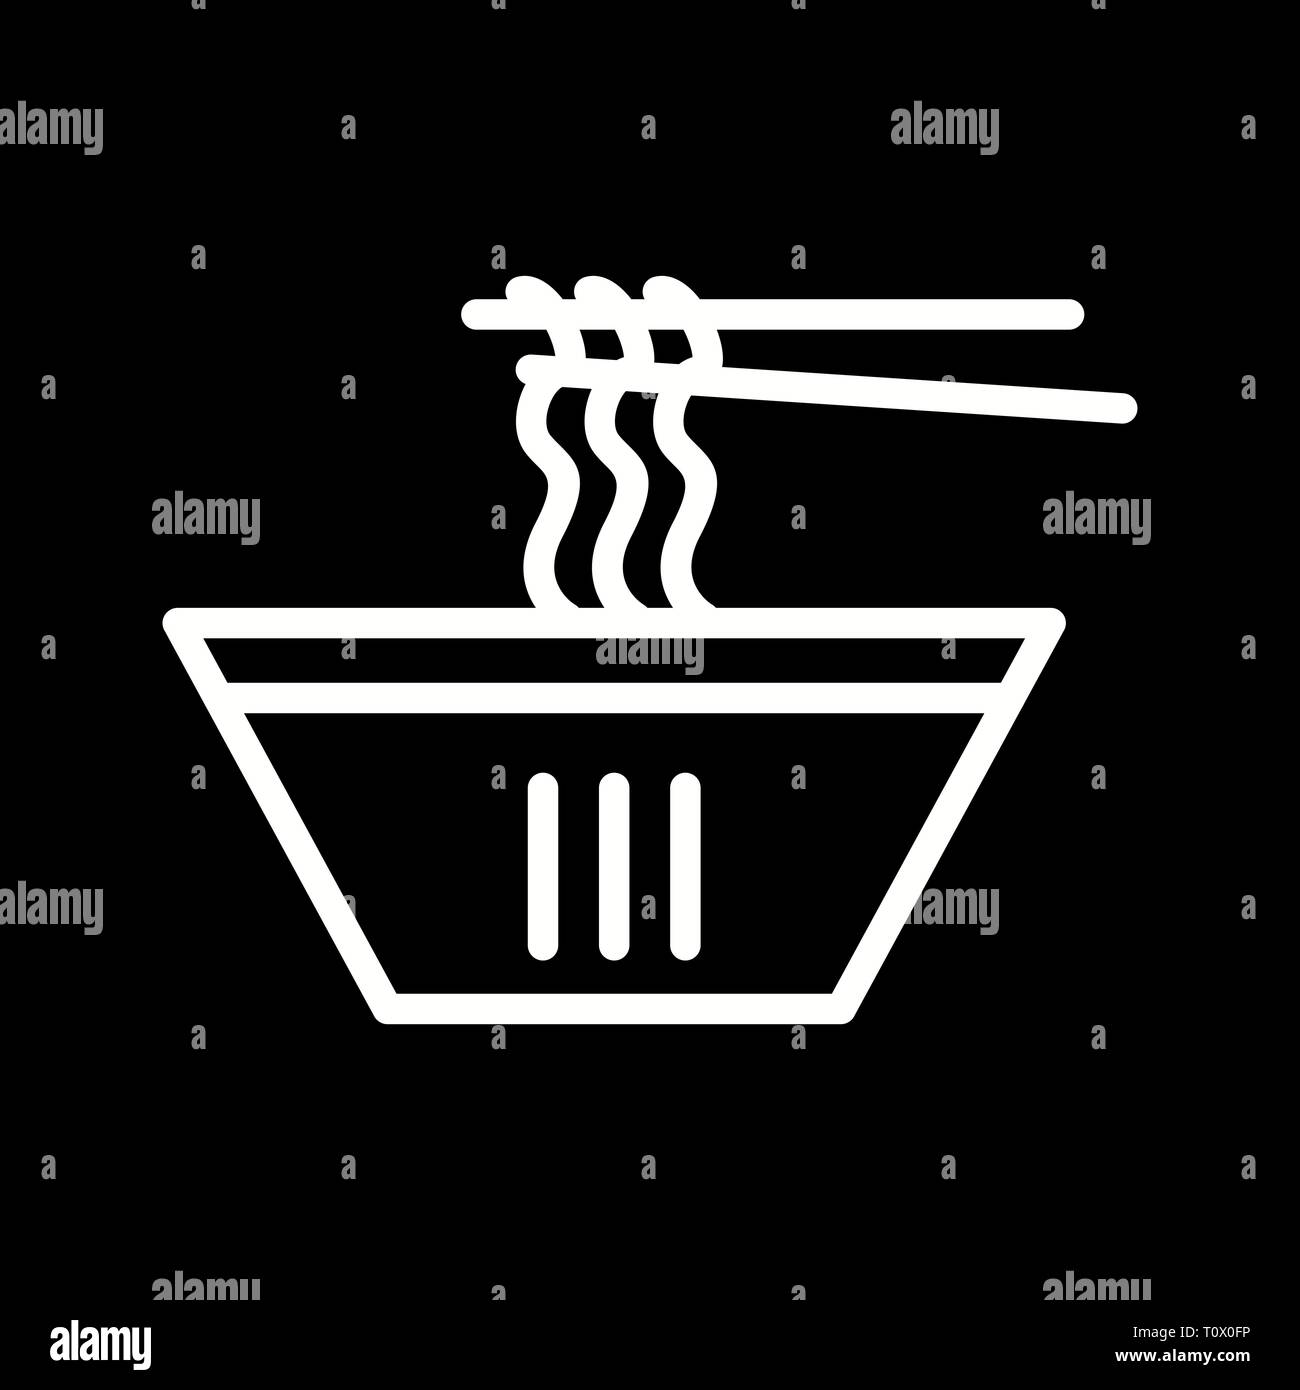 Illustration  Noodles Icon - Stock Image